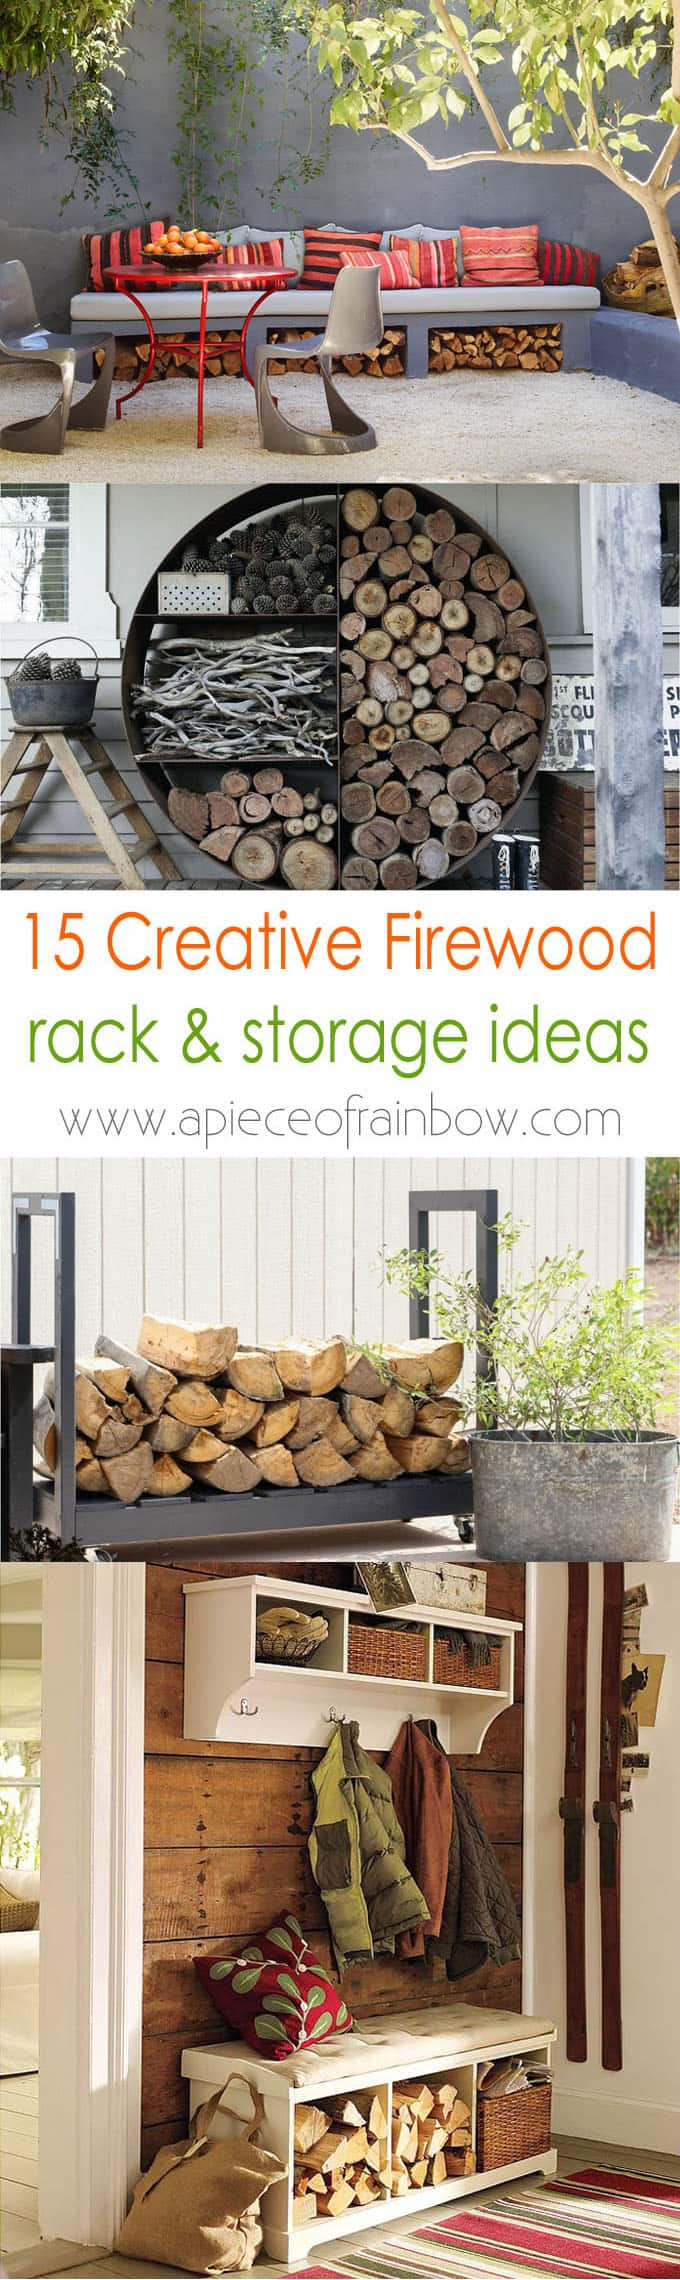 15 Firewood Storage And Creative Firewood Rack Ideas For Indoors And  Outdoors. Lots Of Great